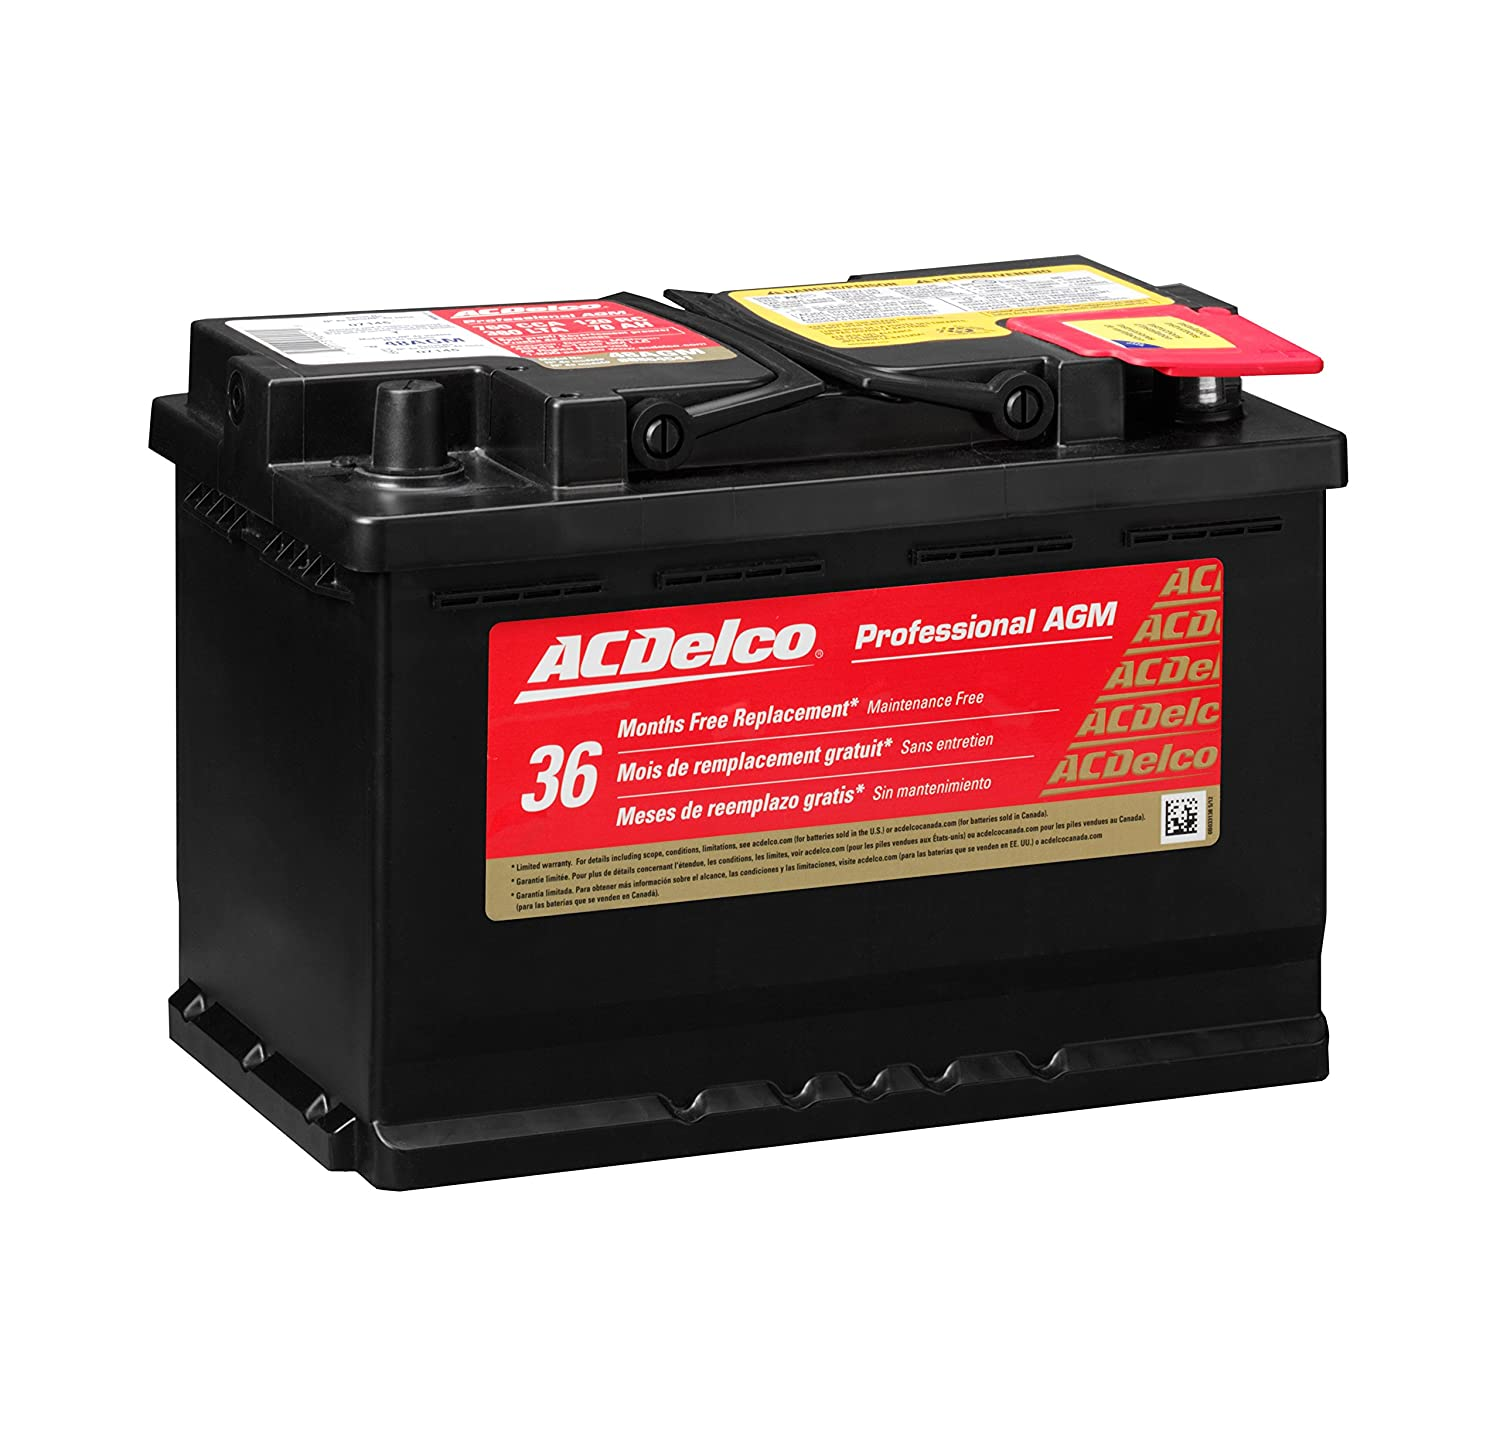 ACDelco 65AGM Professional Automotive Battery